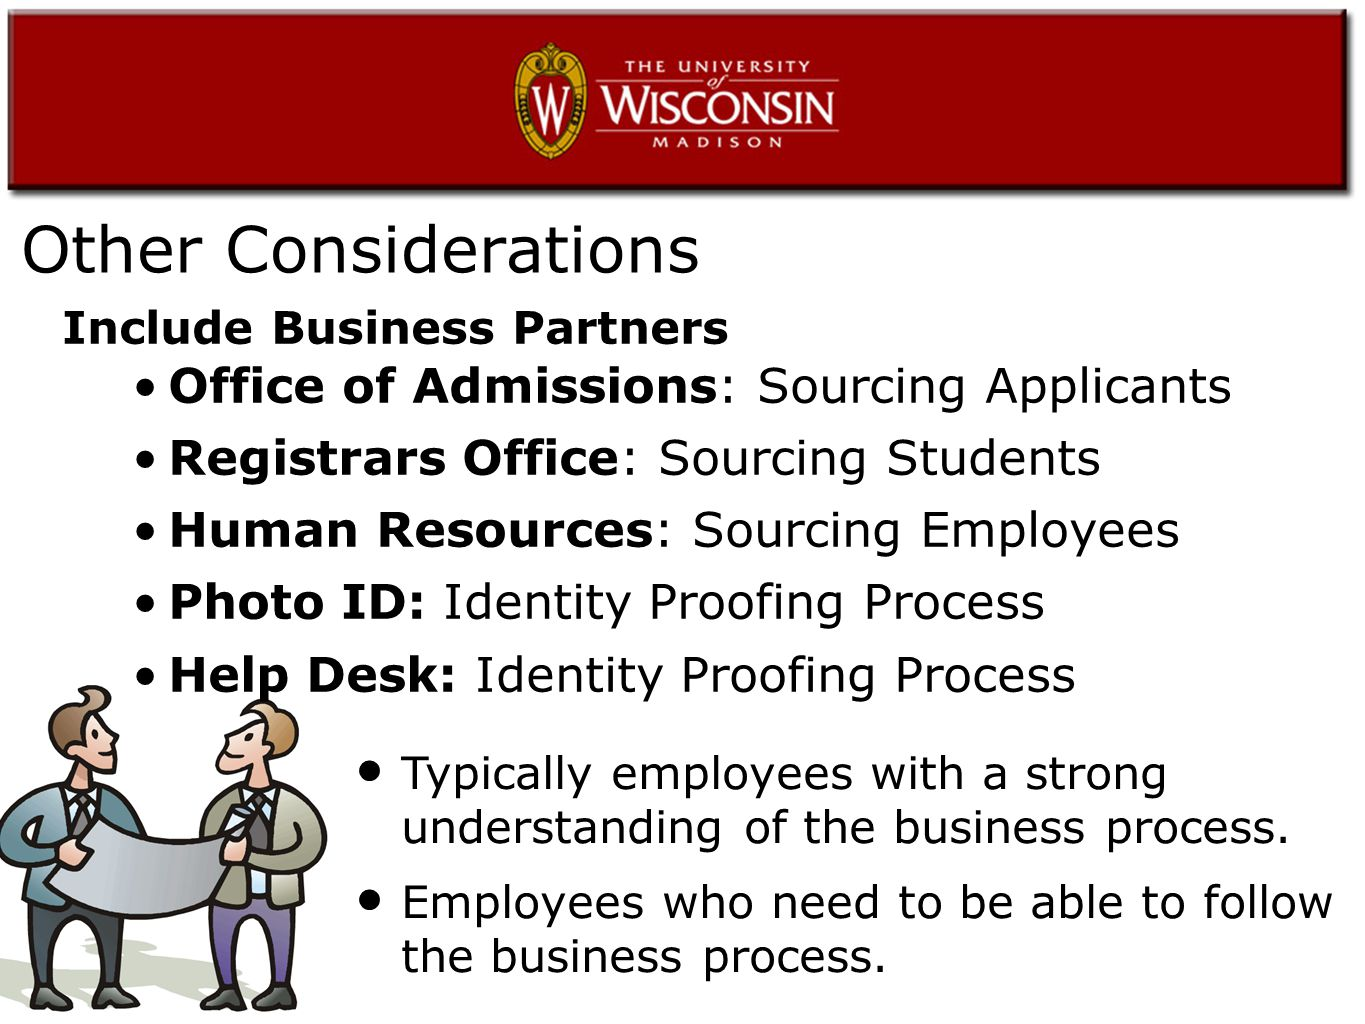 Other Considerations Office of Admissions: Sourcing Applicants Registrars Office: Sourcing Students Human Resources: Sourcing Employees Photo ID: Identity Proofing Process Help Desk: Identity Proofing Process Typically employees with a strong understanding of the business process.